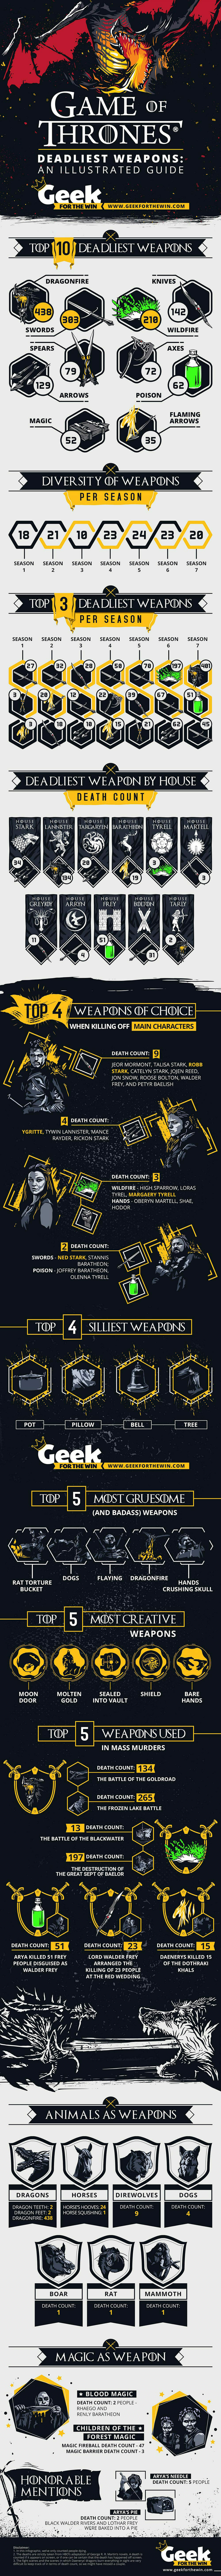 Game of Thrones: Deadliest Weapons - An Illustrated Guide